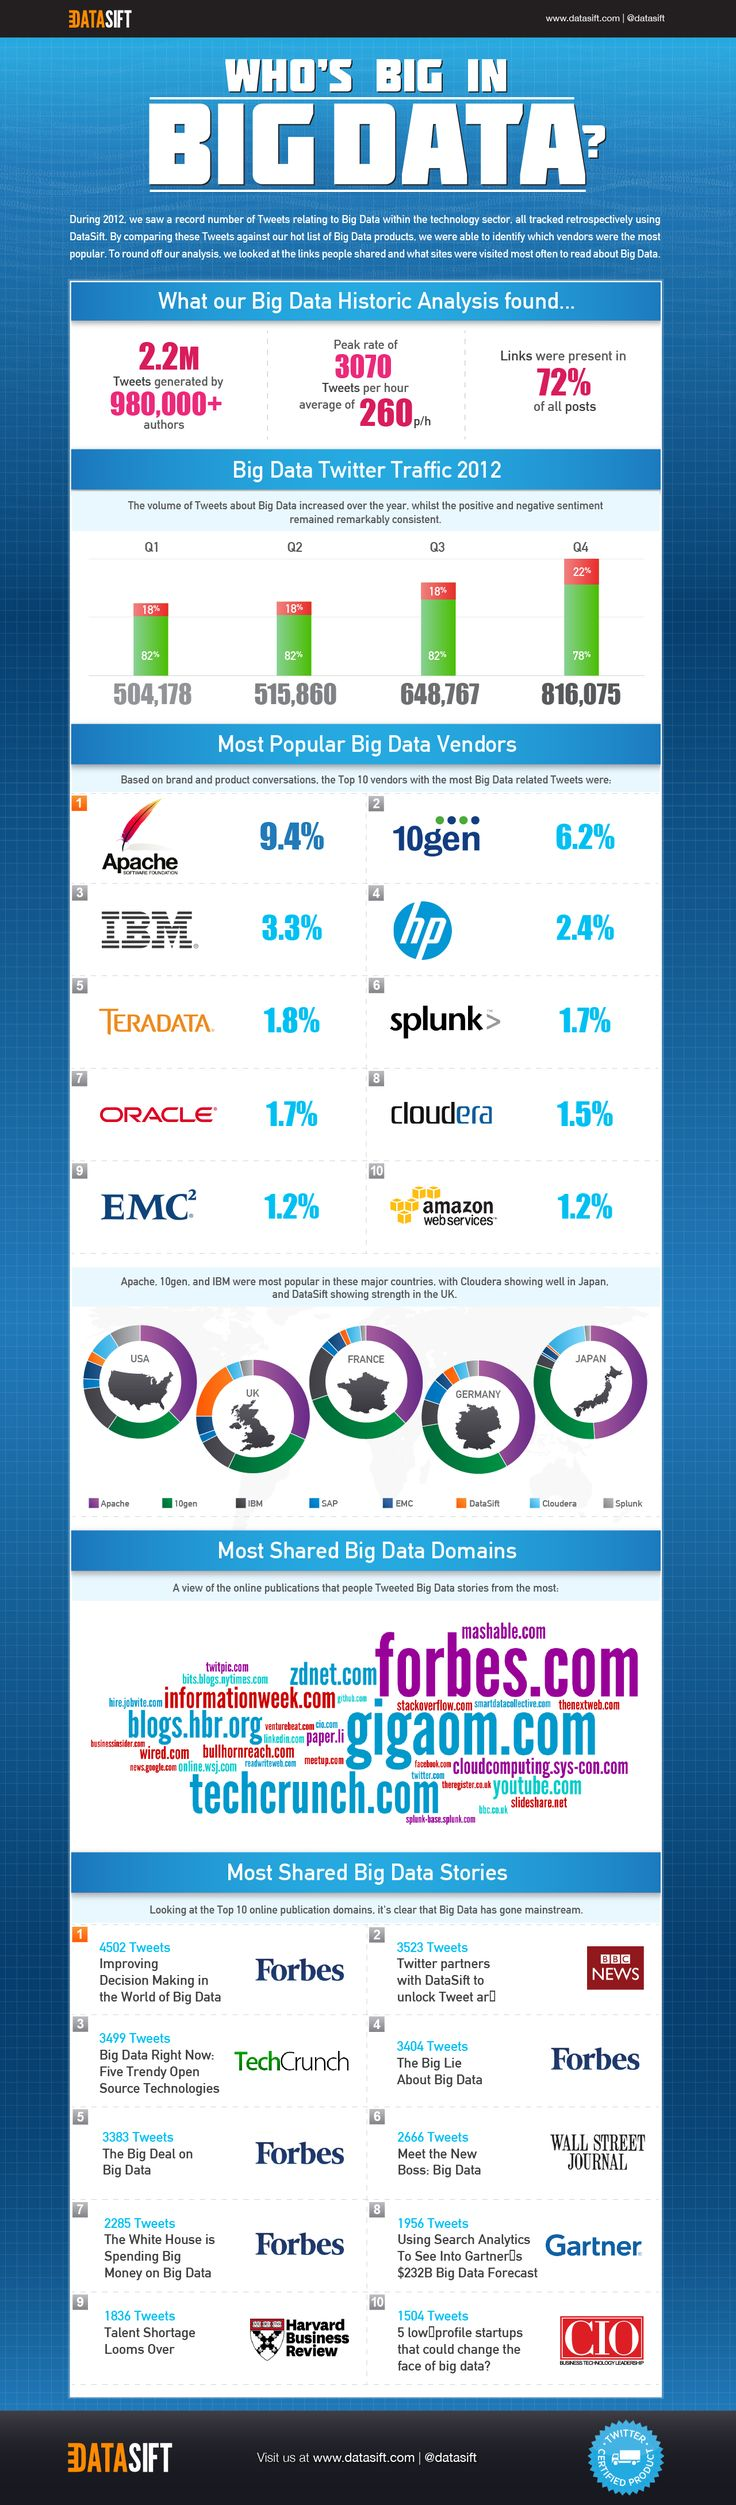 Tweets relating to Big Data are hot. Check out this infographic on what people are talking about and sharing.